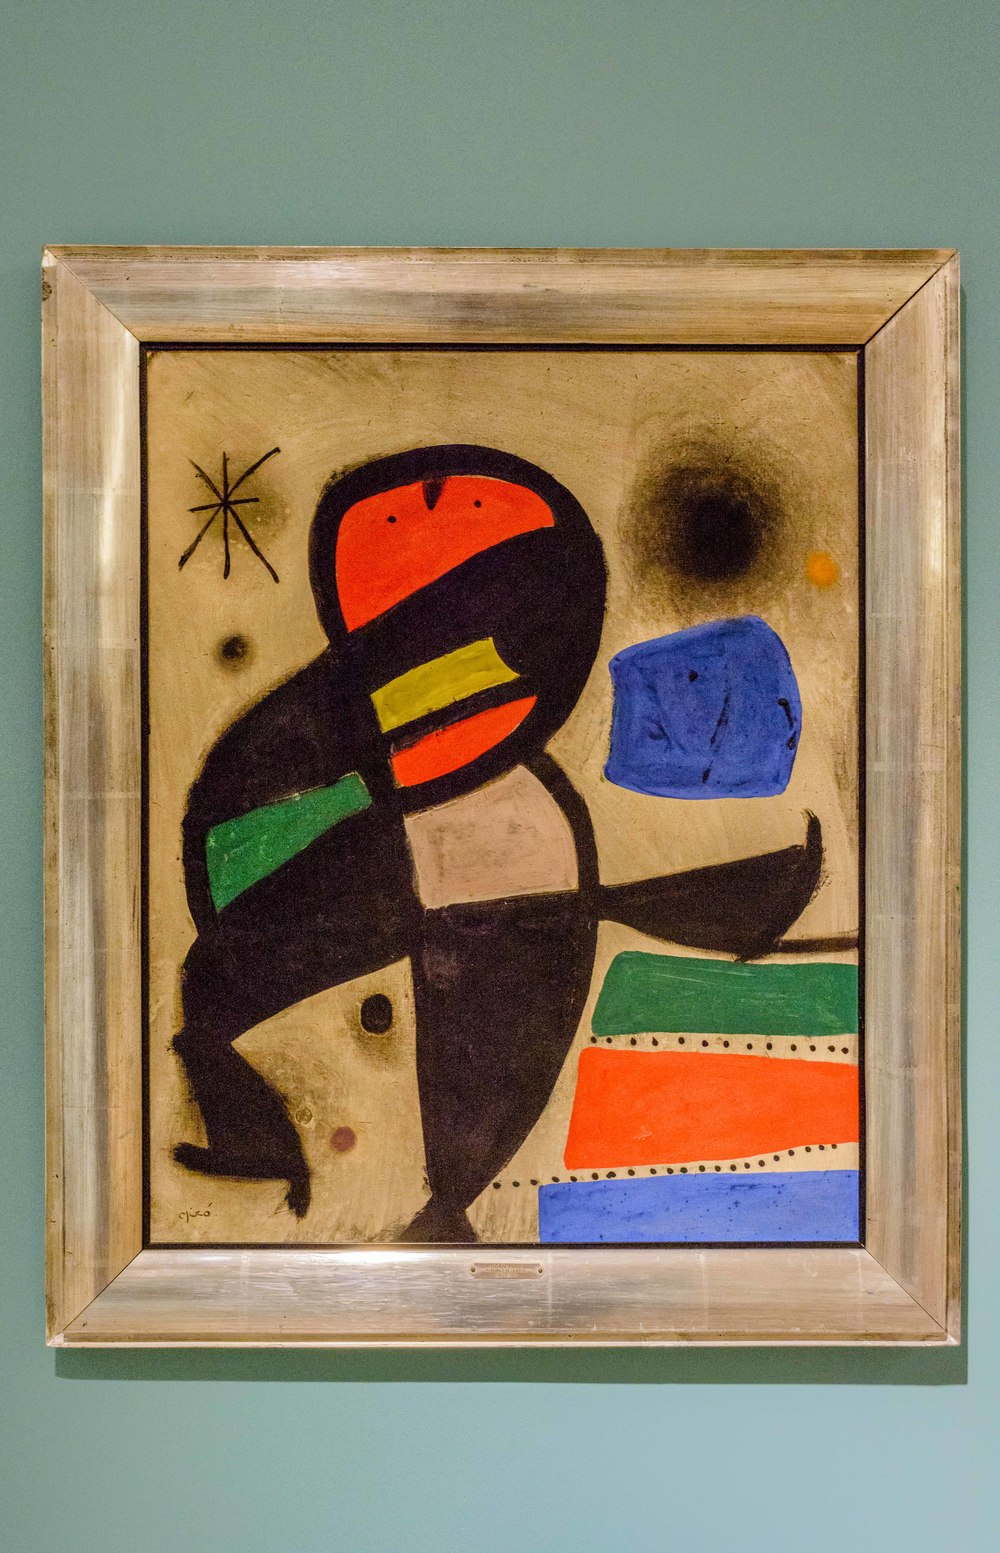 Personage in the Night, Joan Miro 1960.